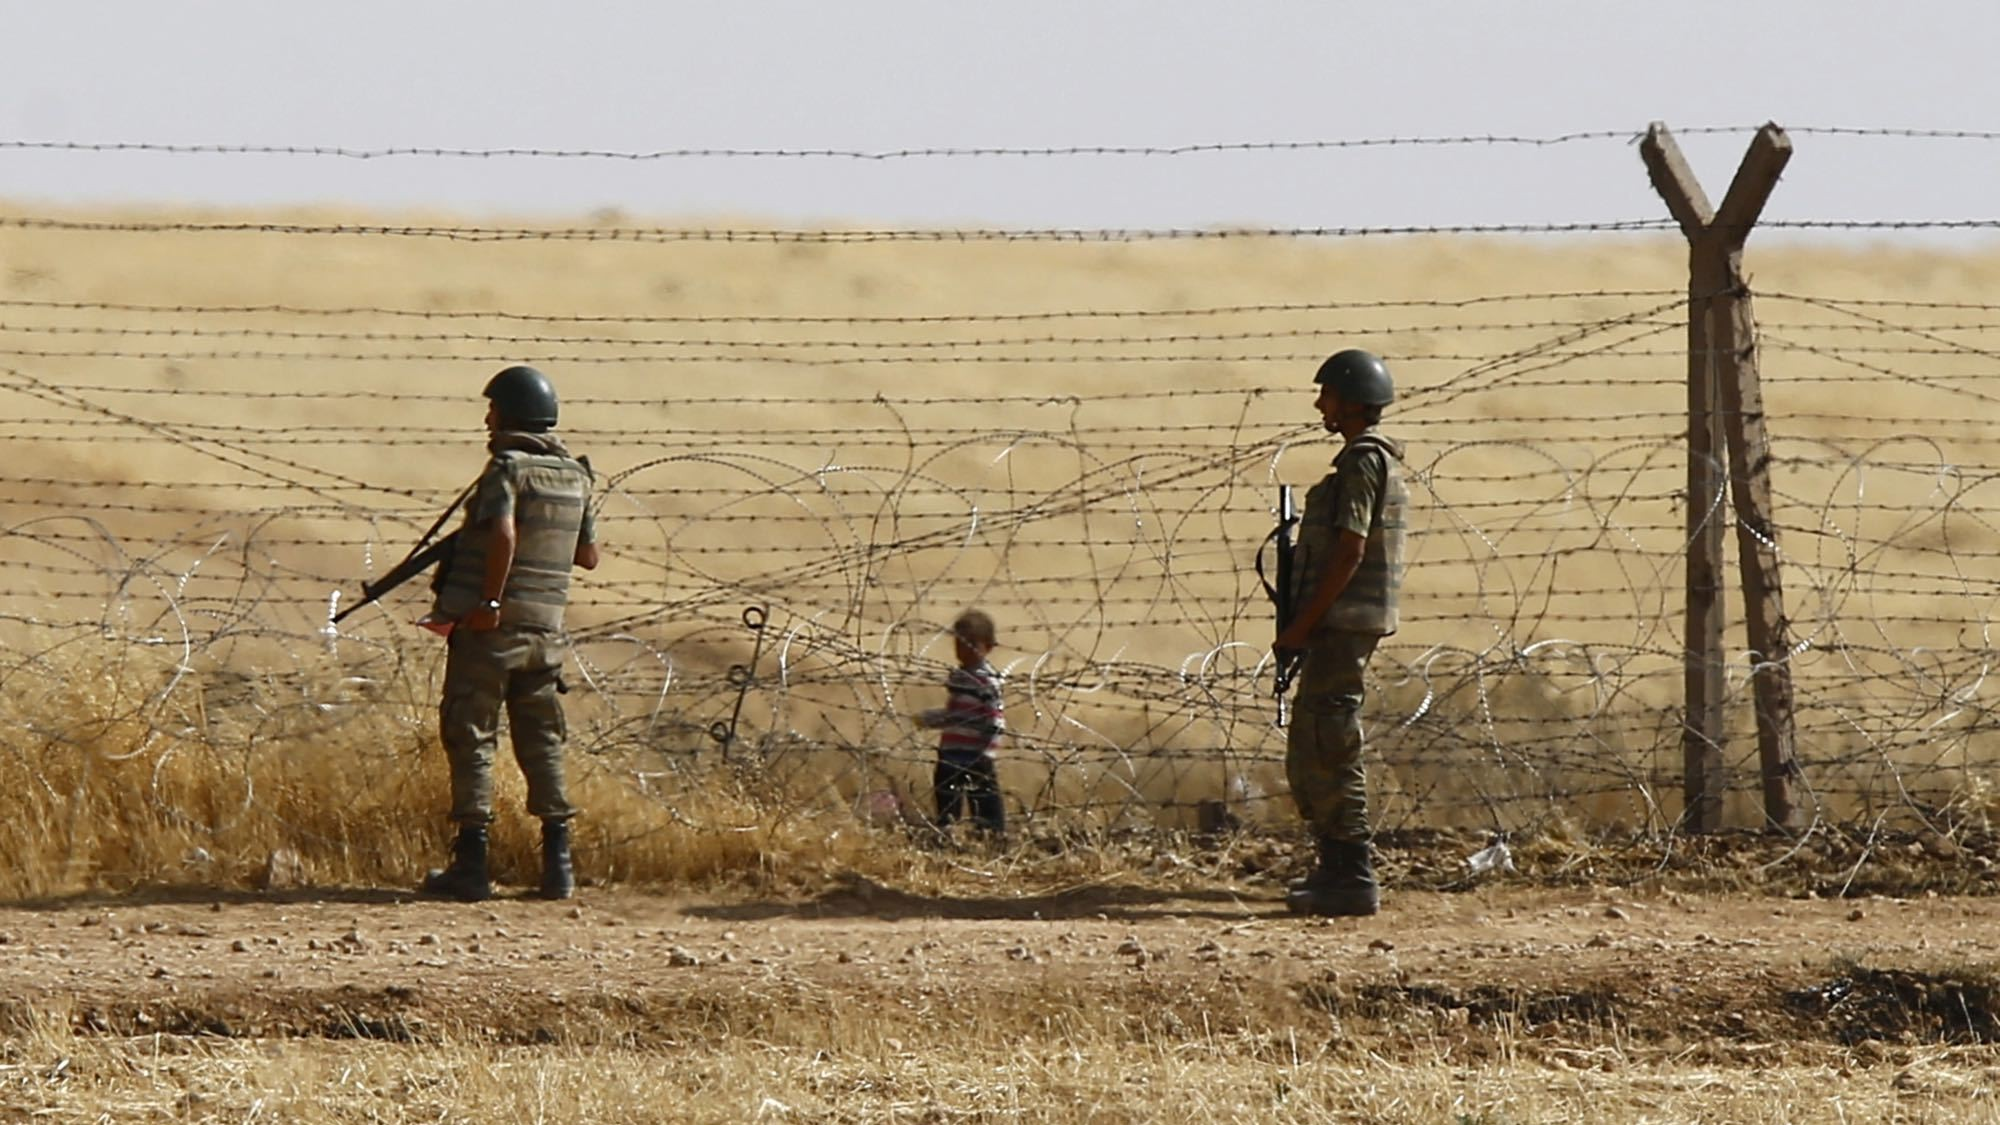 Turkish troops killed 7 adults and 4 children as they tried to flee Syria on Saturday